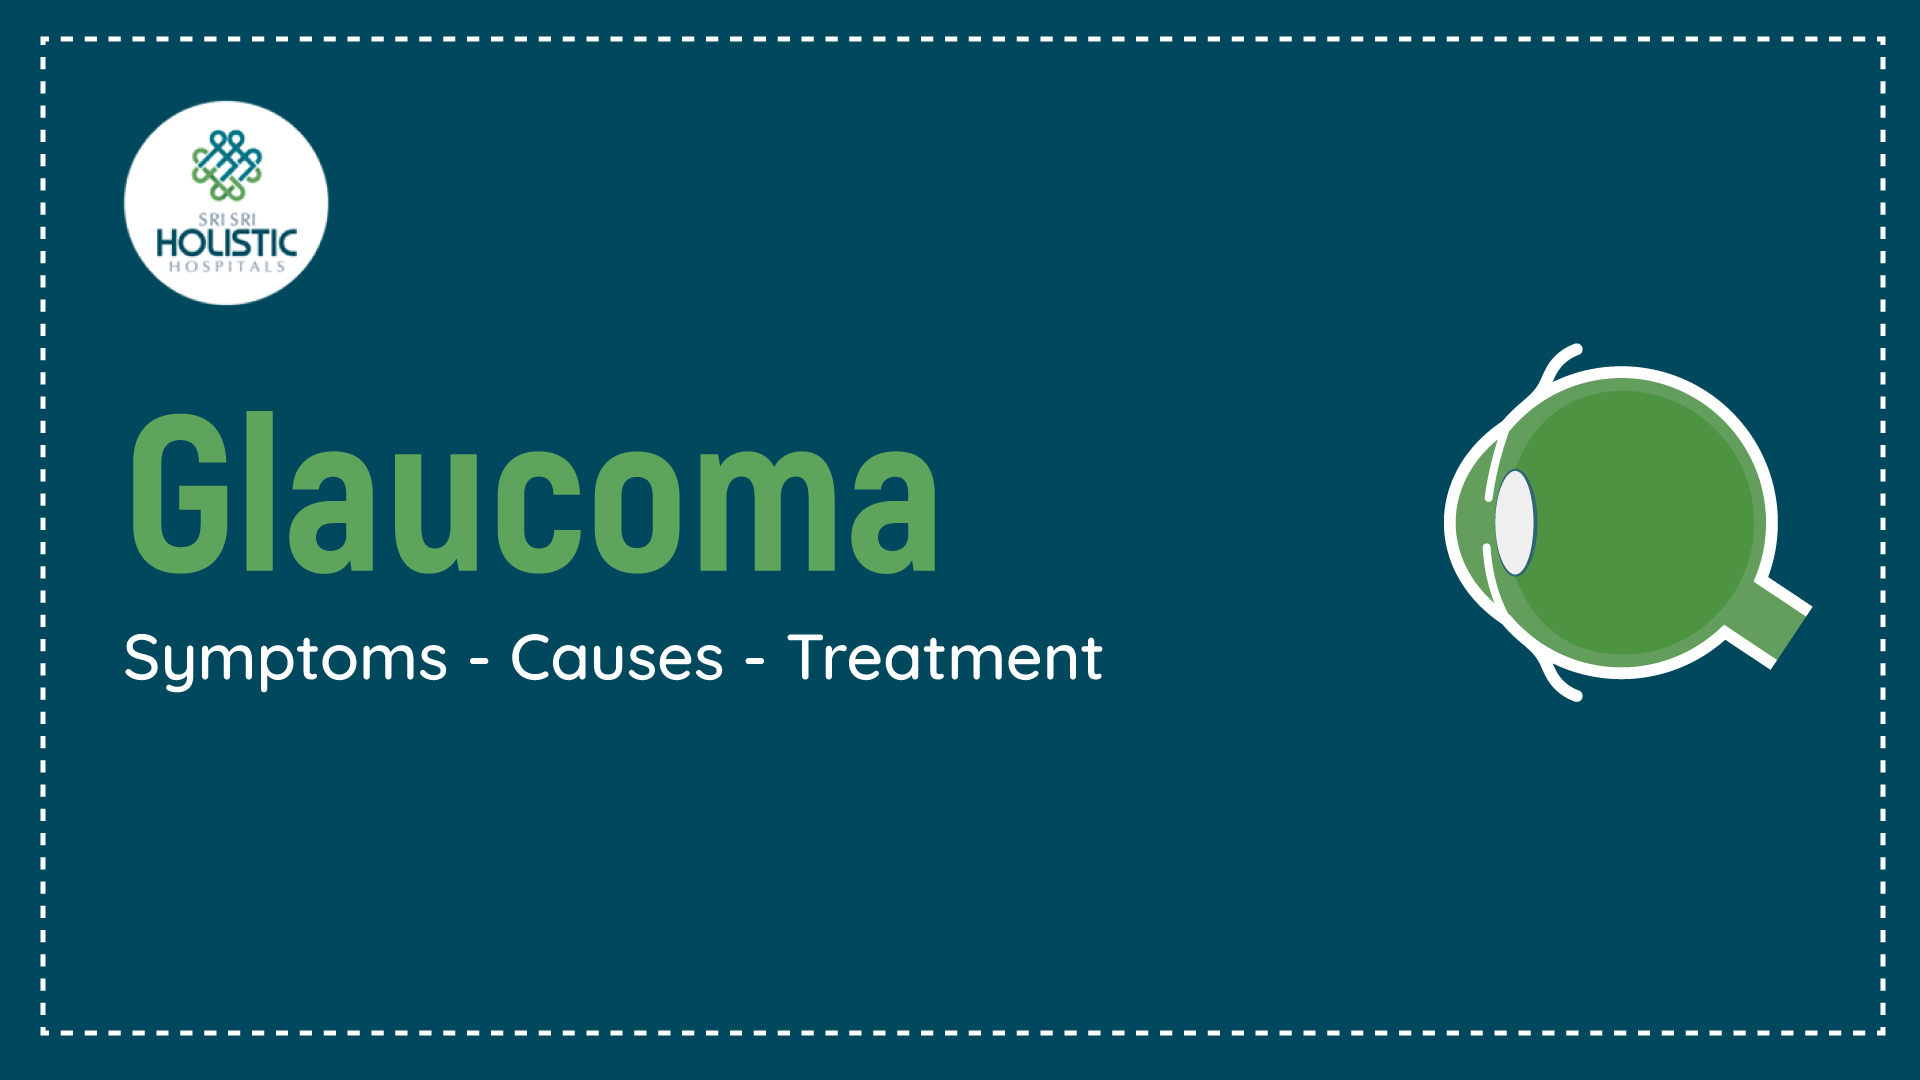 Glaucoma Symptoms, Causes and Treatment